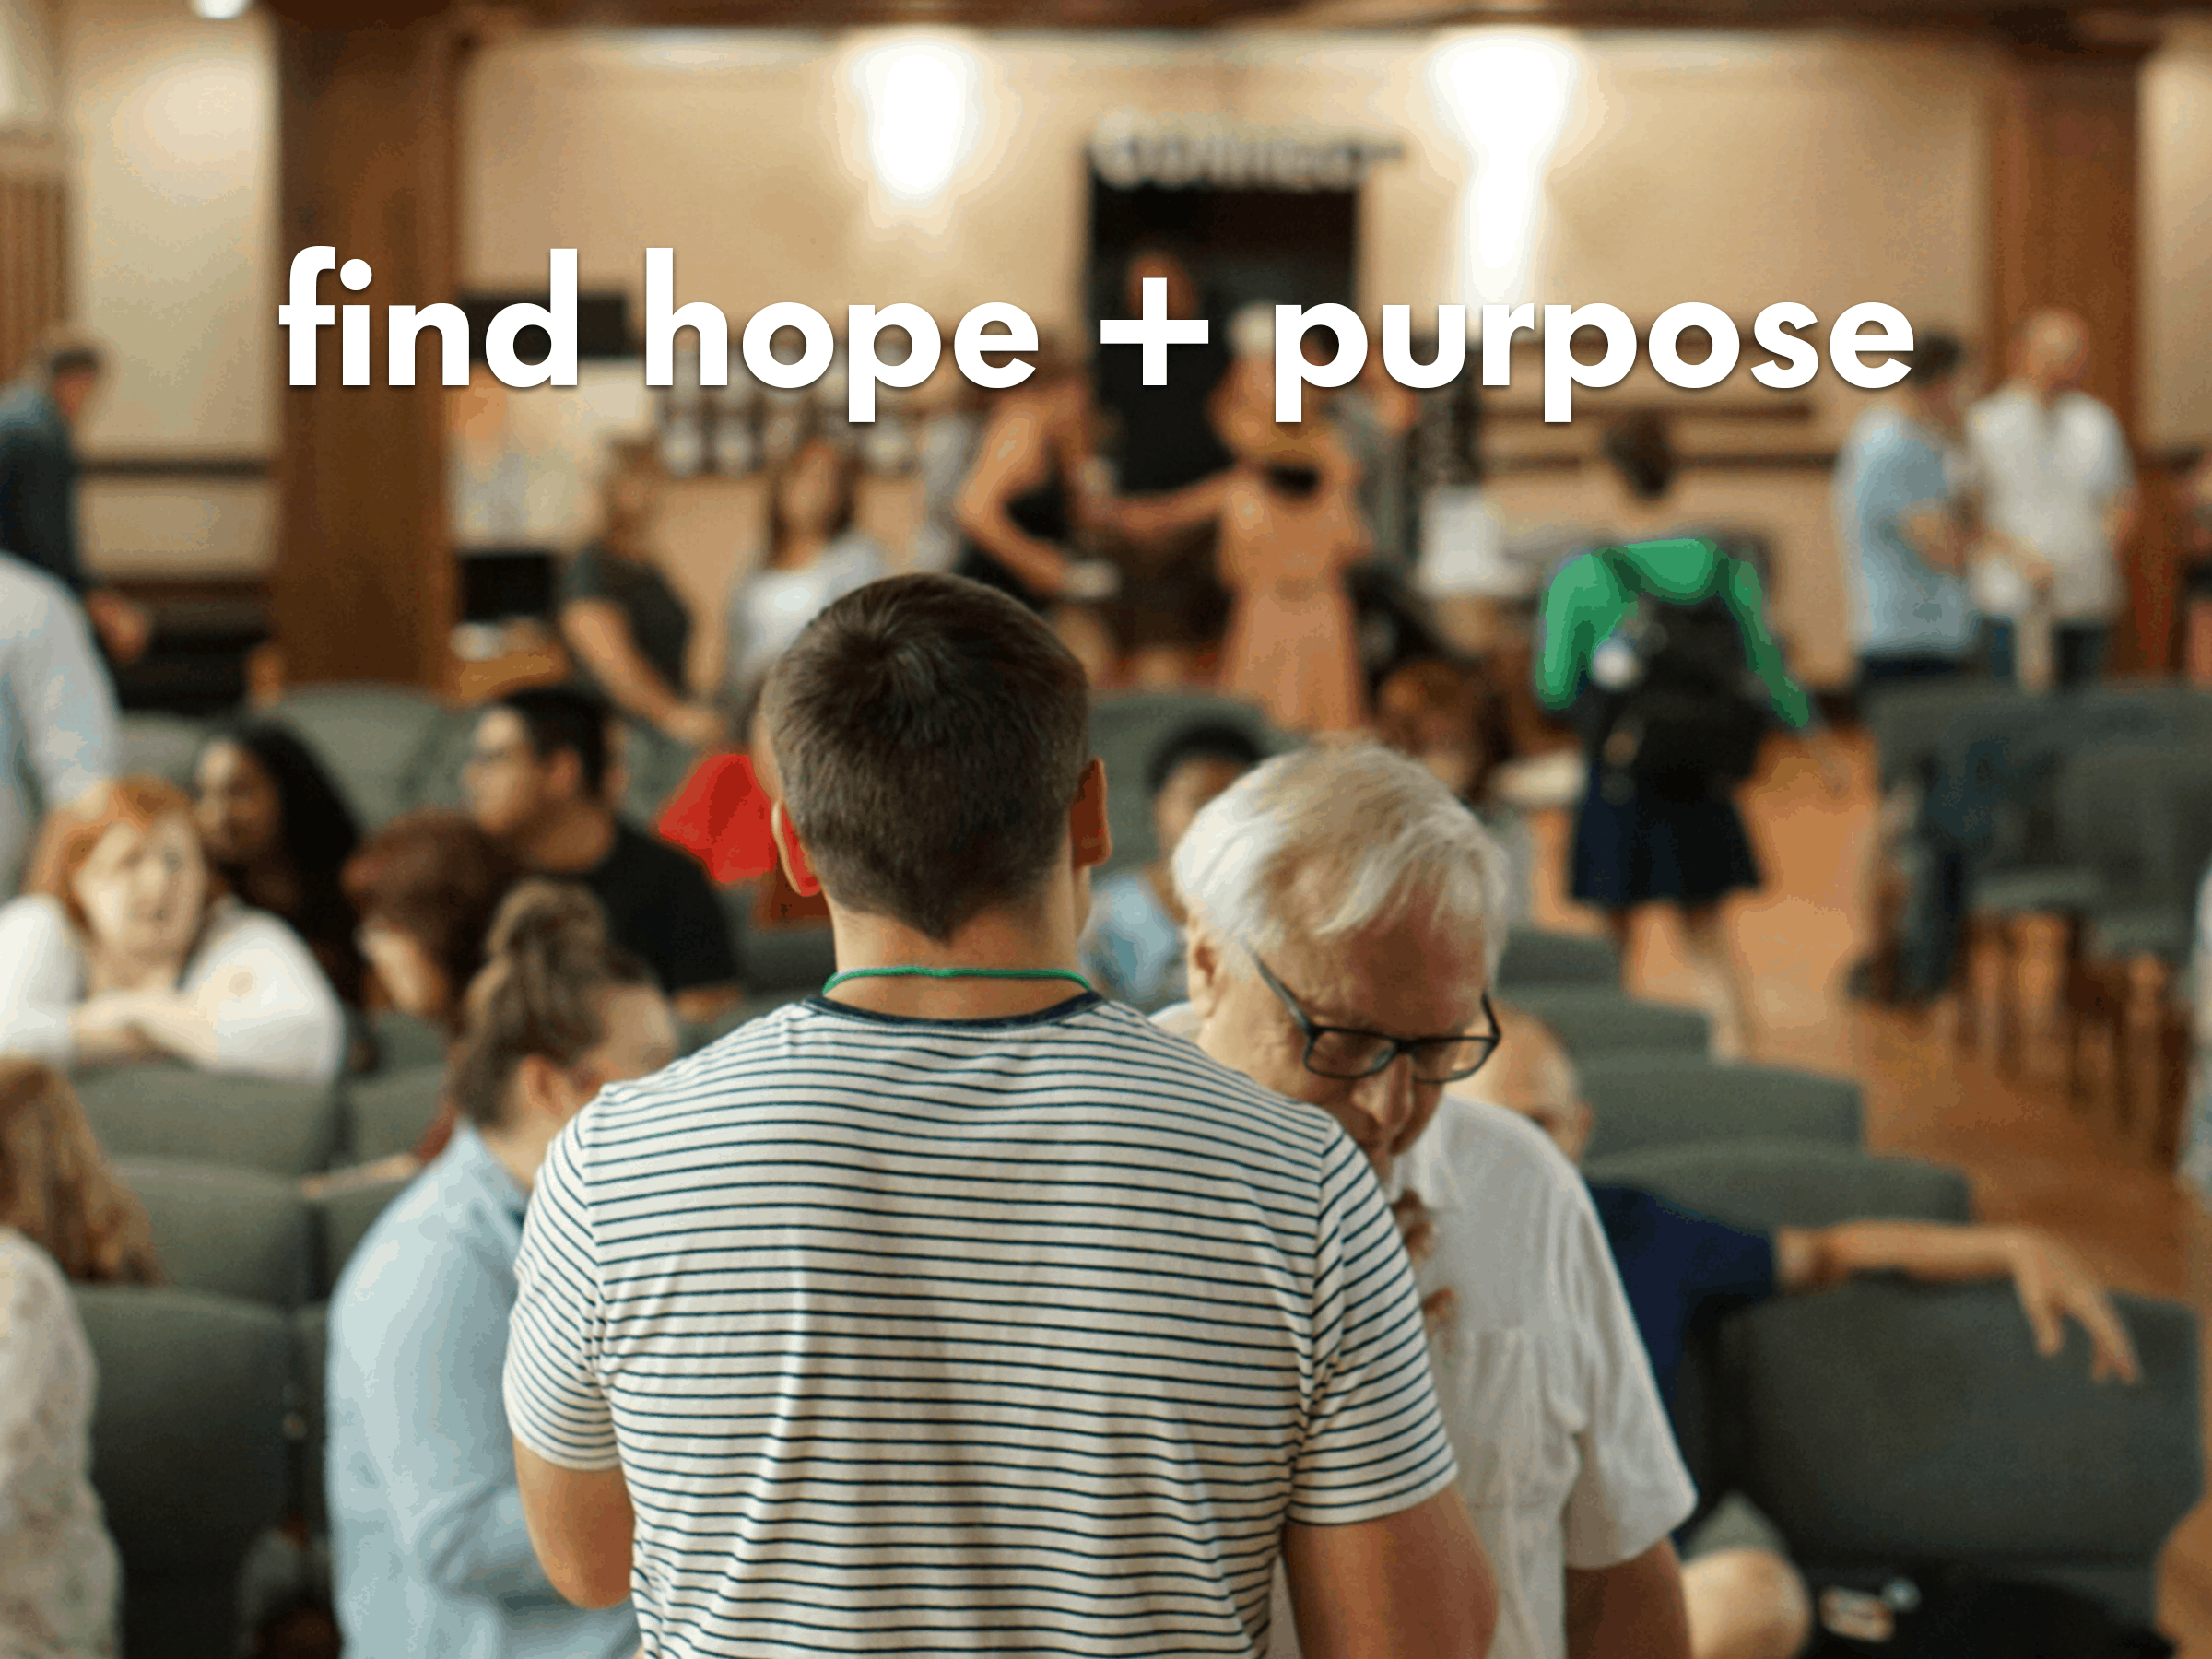 find hope purpose